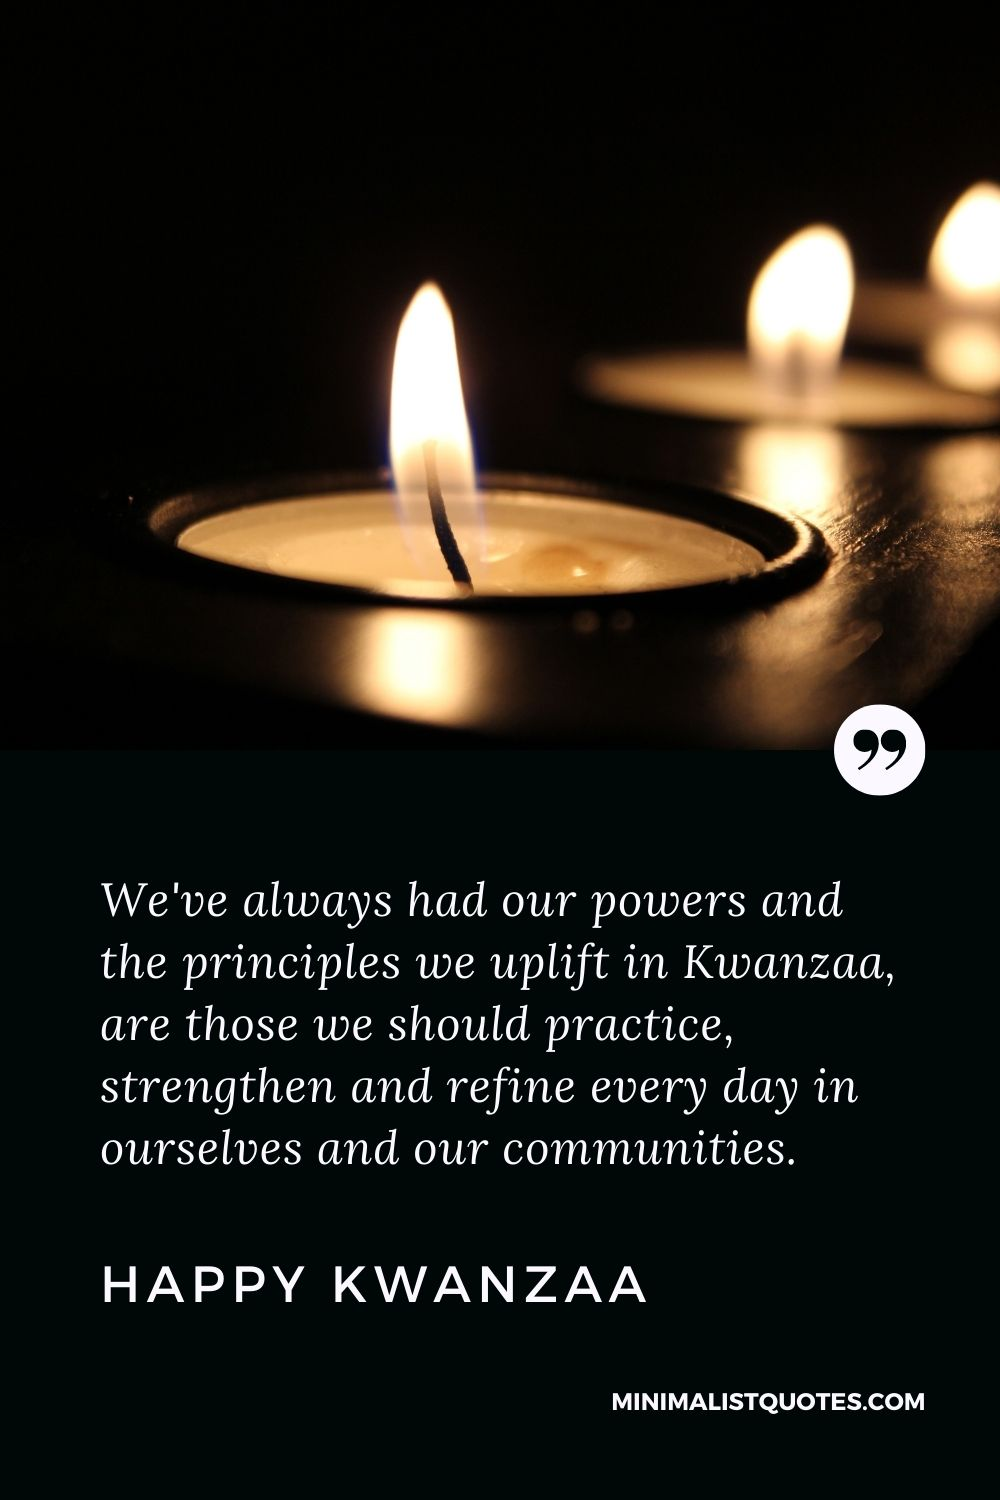 Kwanzaa Quote, Wish & Message With Image: We've always had our powers and the principles we uplift in Kwanzaa, are those we should practice, strengthen and refine every day in ourselves and our communities. Happy Kwanzaa!